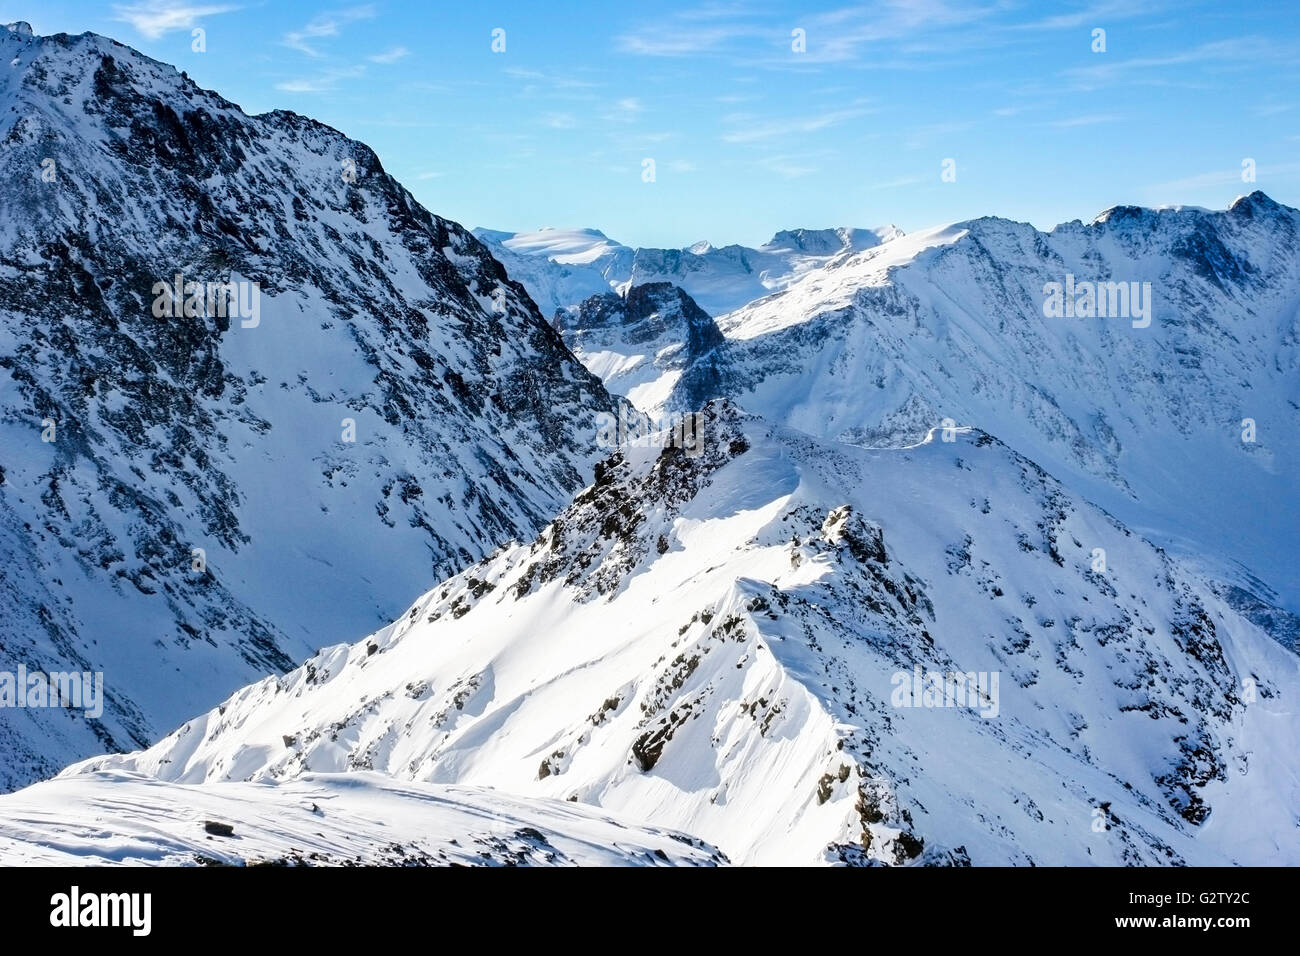 View from L'aiguille Rouge (3200m) in Les Arcs 2000 ski area, France - Stock Image